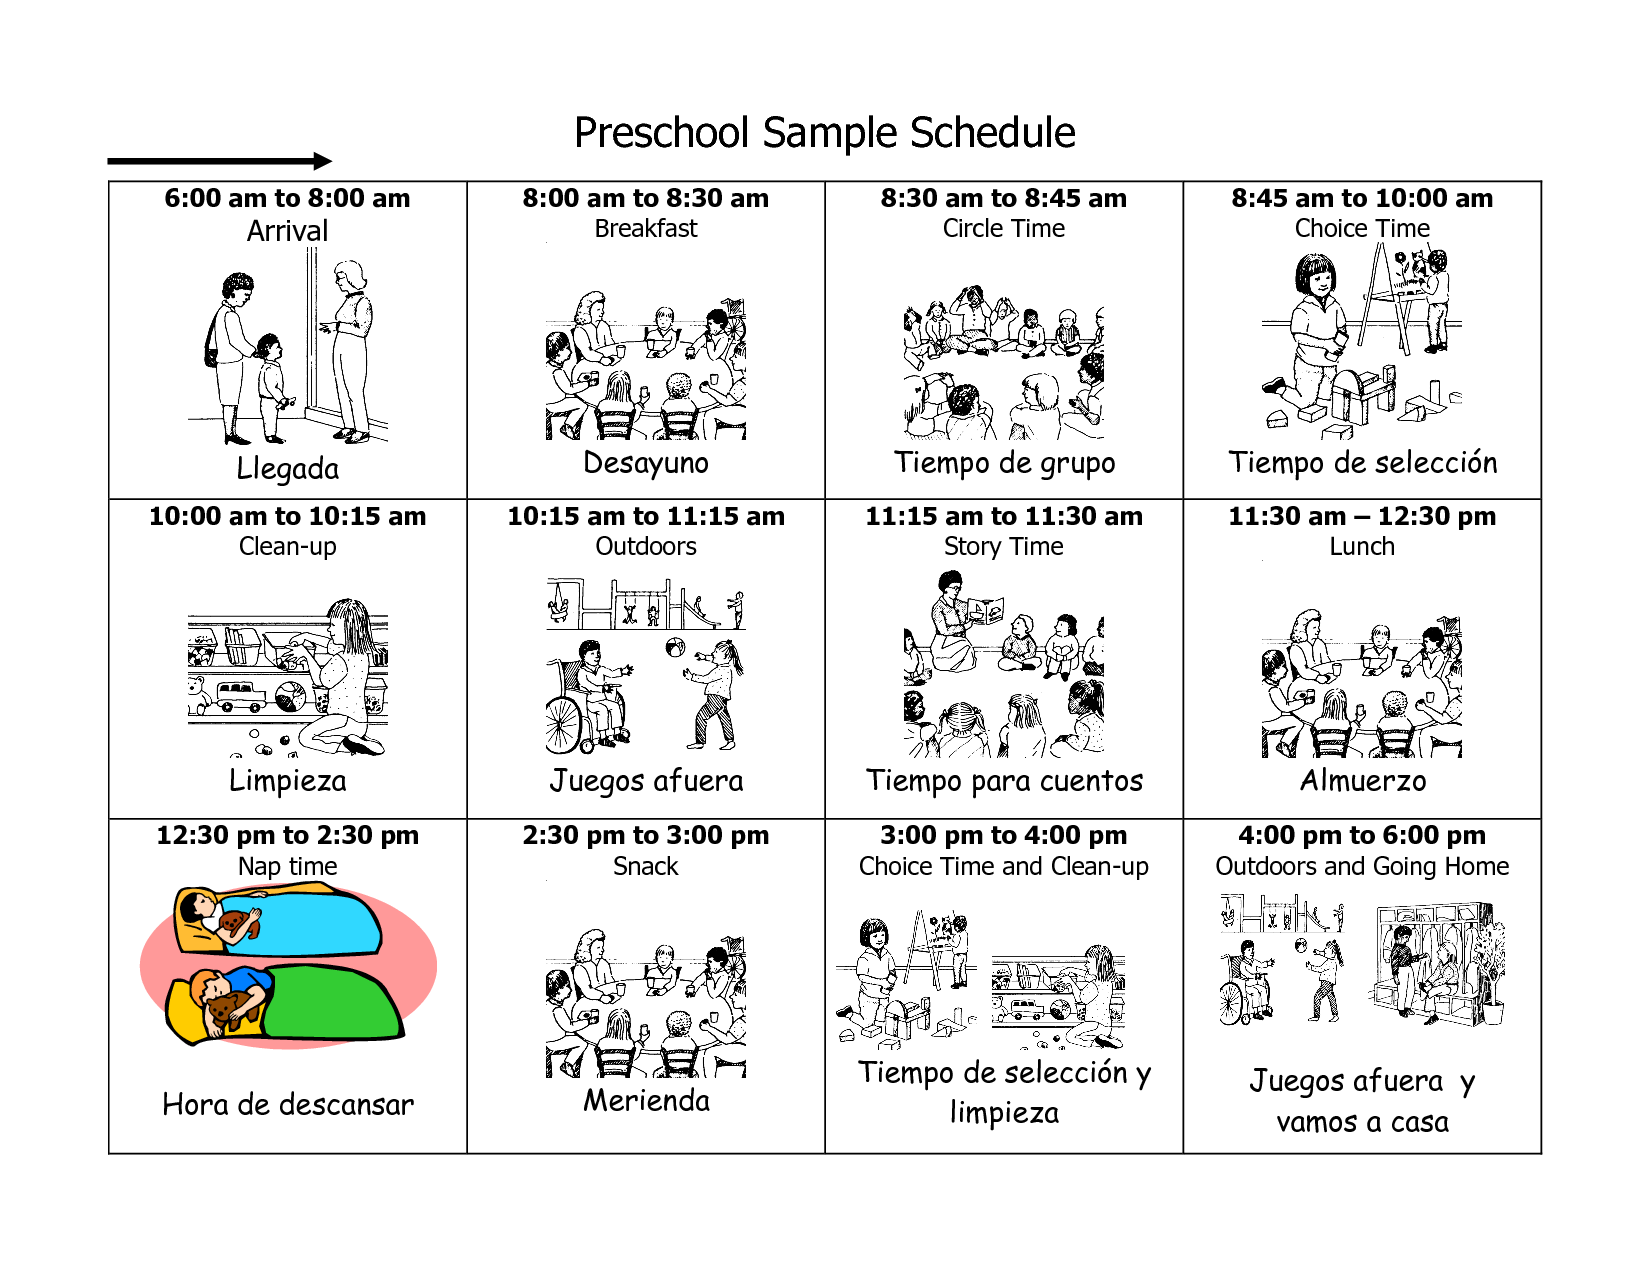 Daycare Schedule in English/Spanish. | Picture Schedules | Pinterest